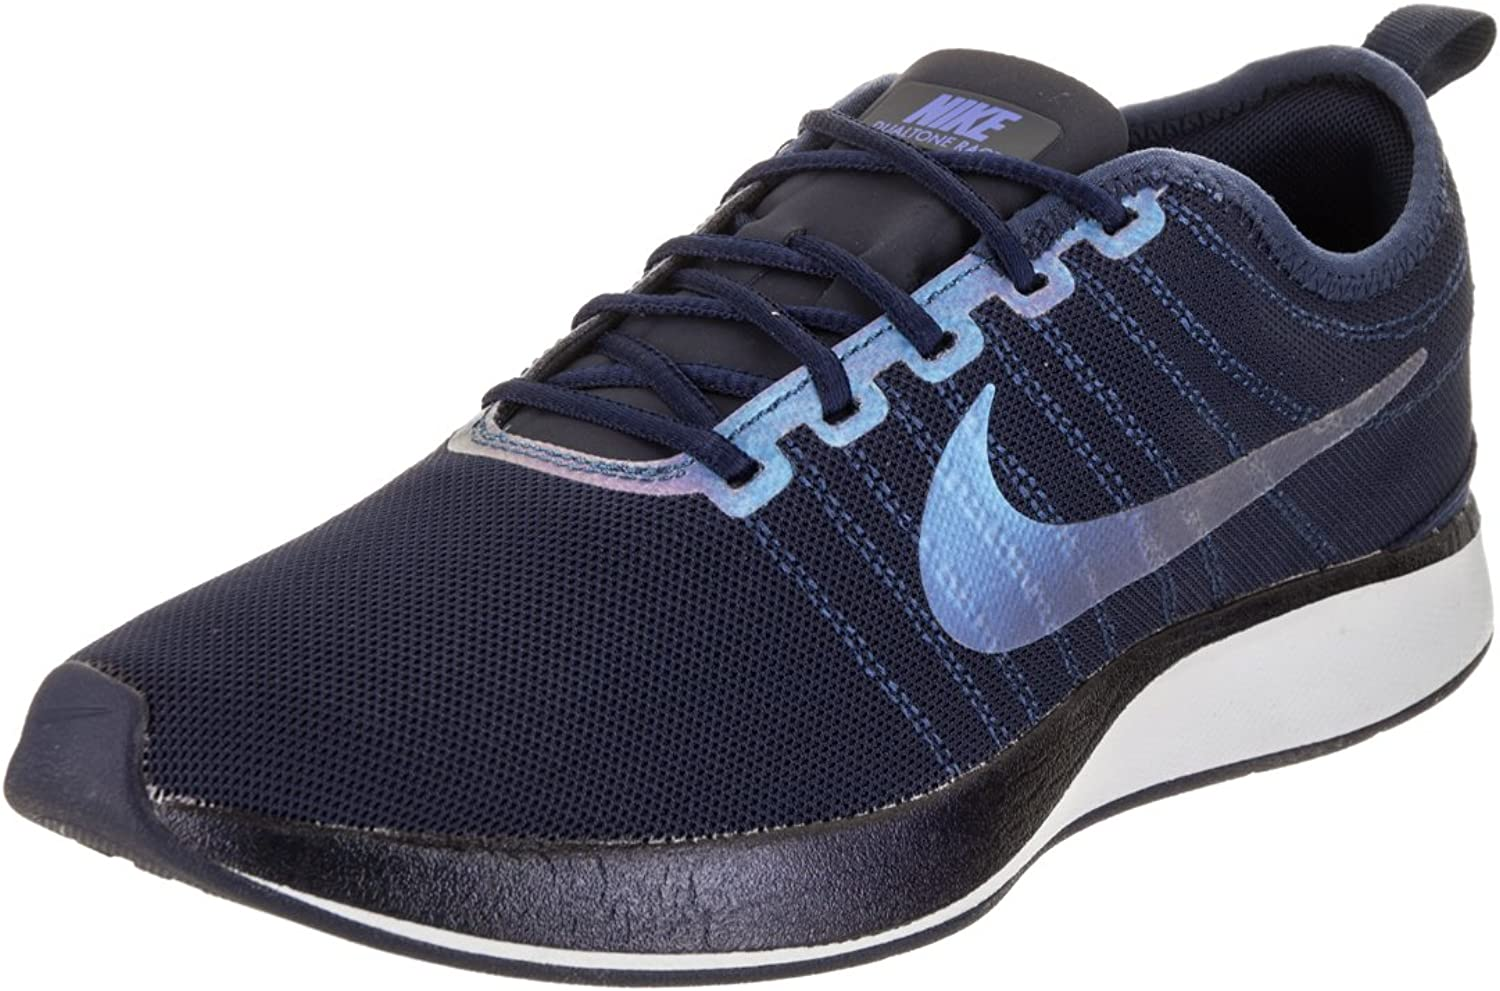 Nike Women's Dualtone Racer RS Casual shoes